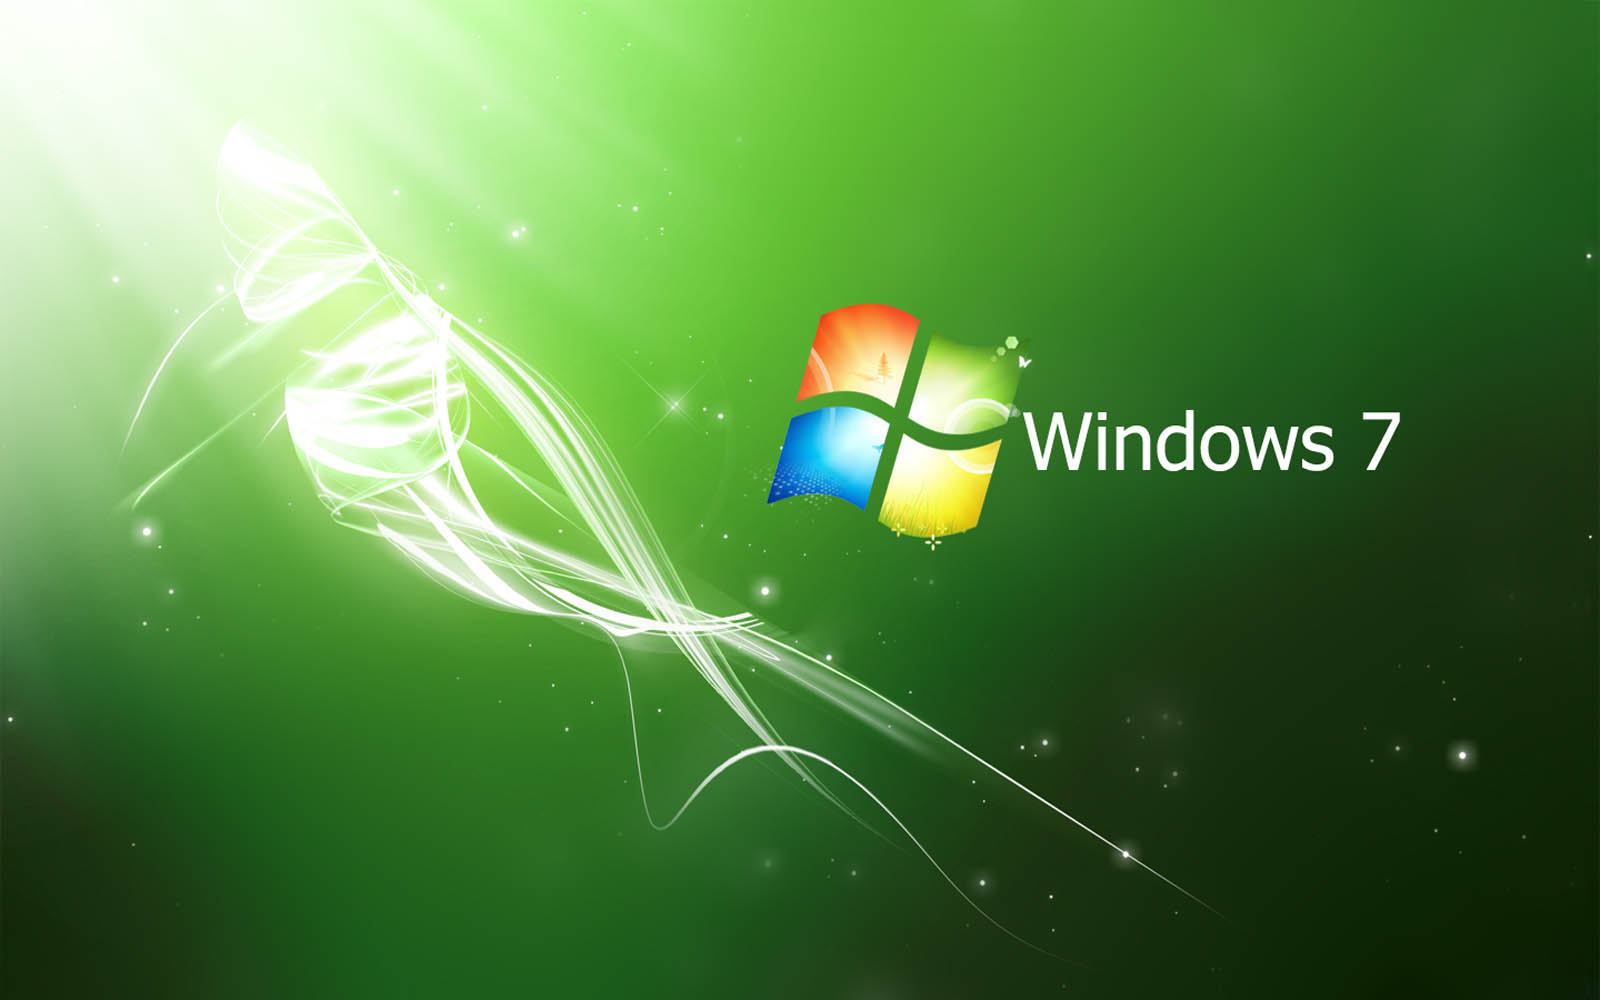 Wallpapers green windows 7 wallpapers for In wallpaper